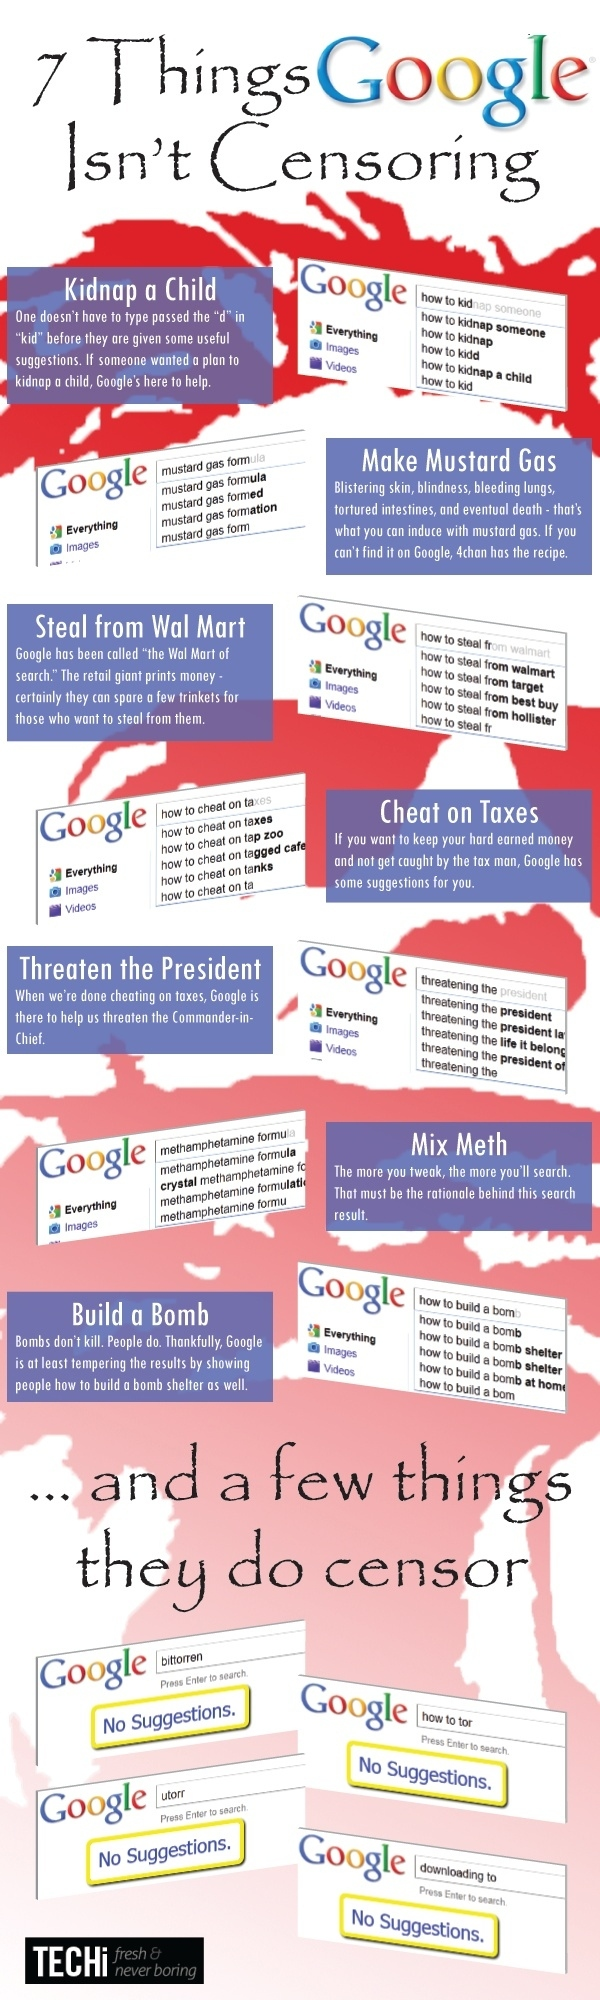 7 Terrible Things Google Isn't Censoring, And A Few They Are